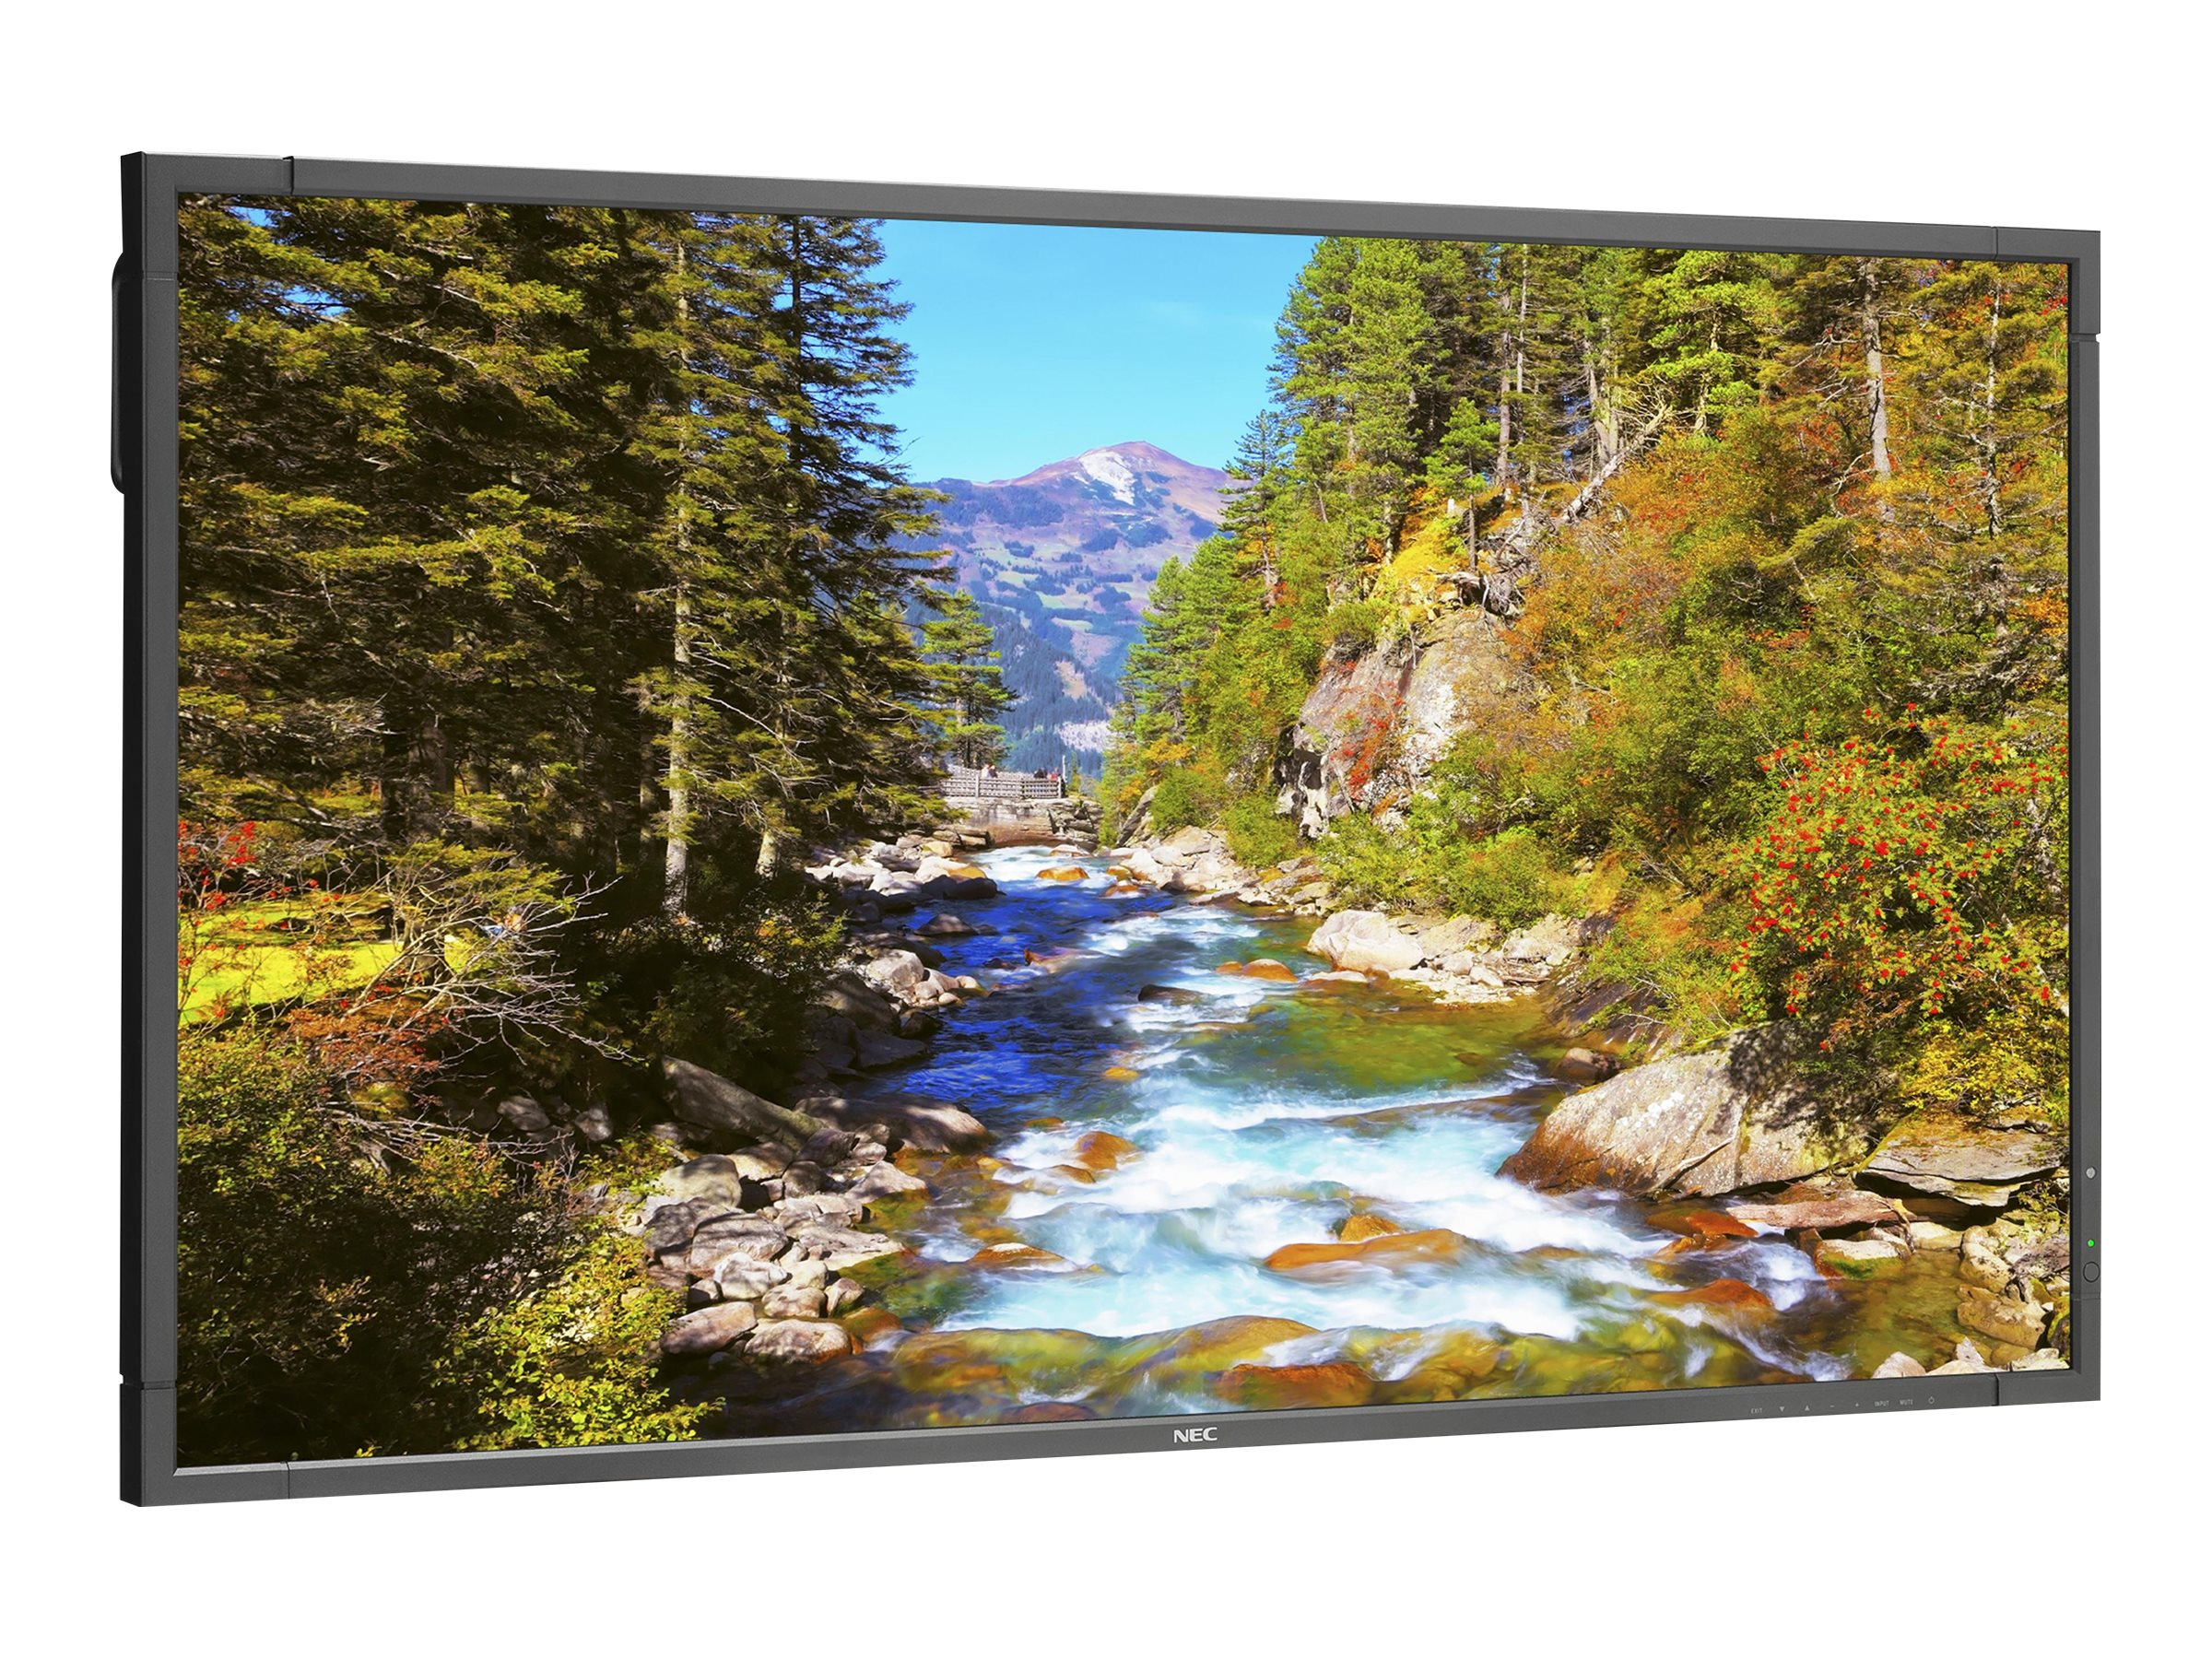 NEC 70 E705 Full HD LED-LCD Commercial Display with Integrated Tuner, E705-AVT